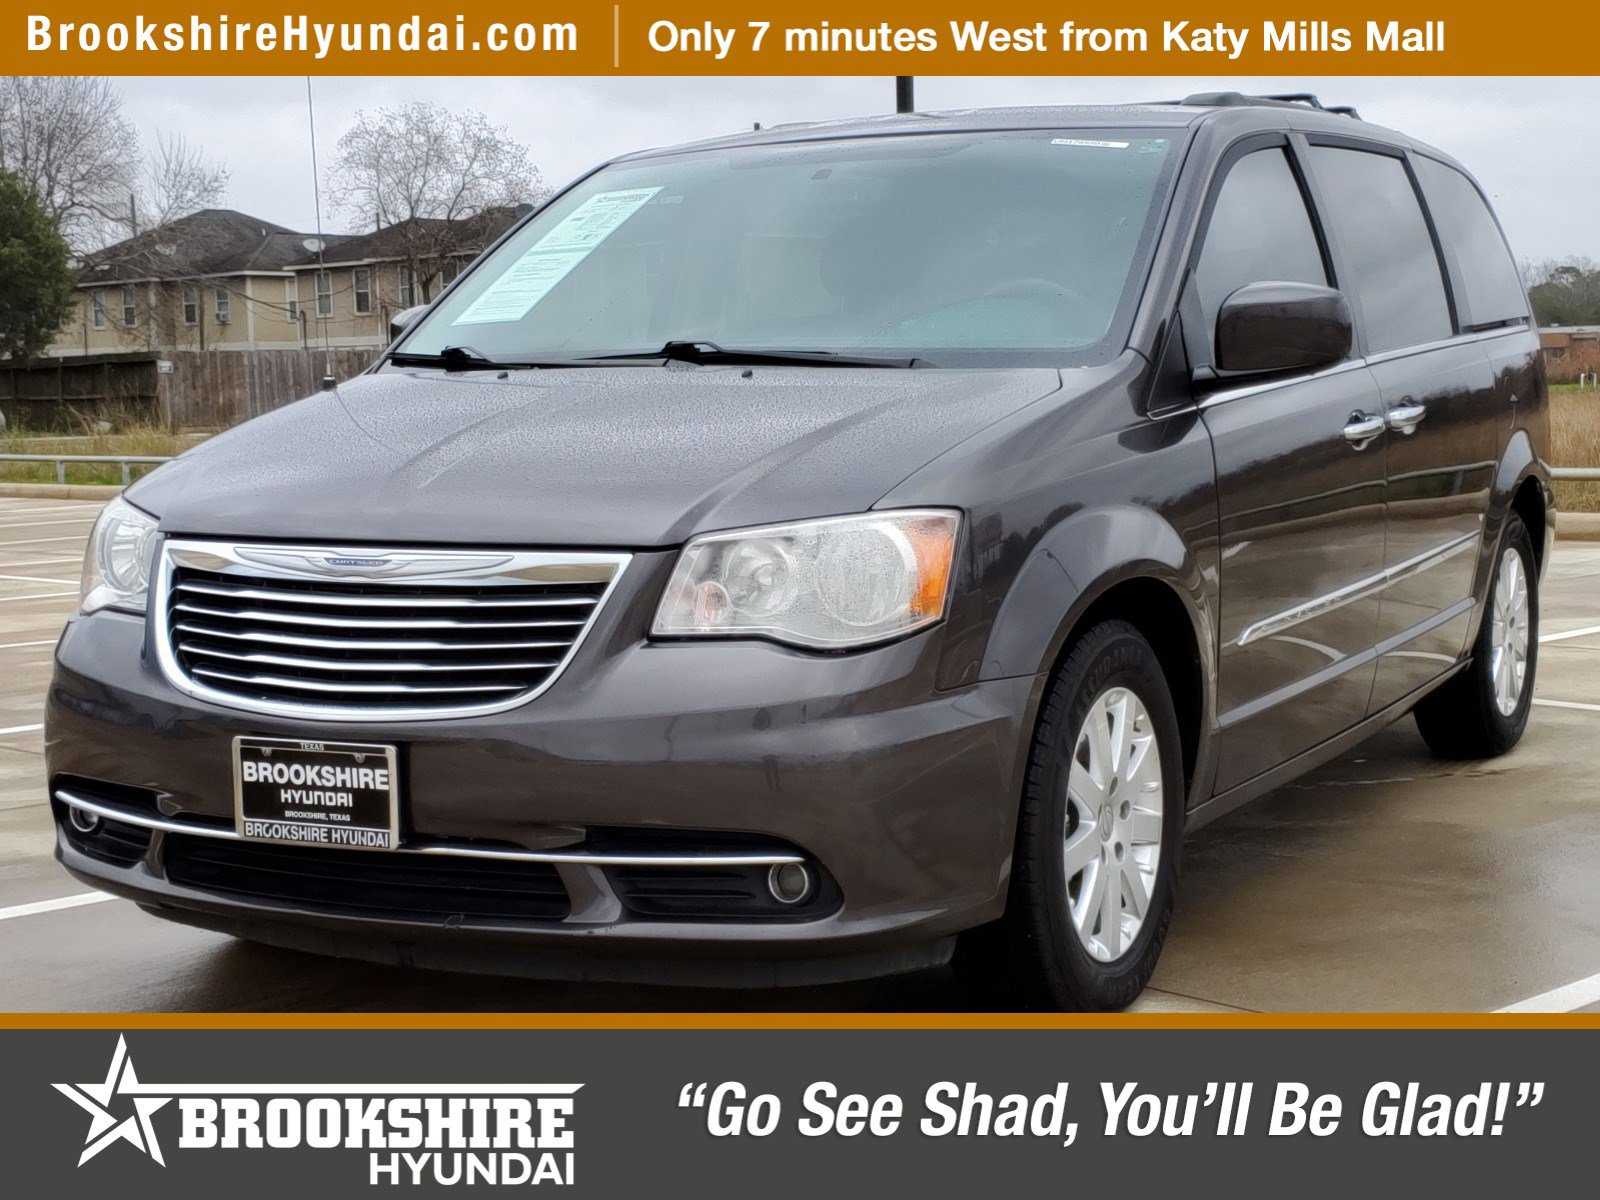 2016 Chrysler Town & Country Touring image